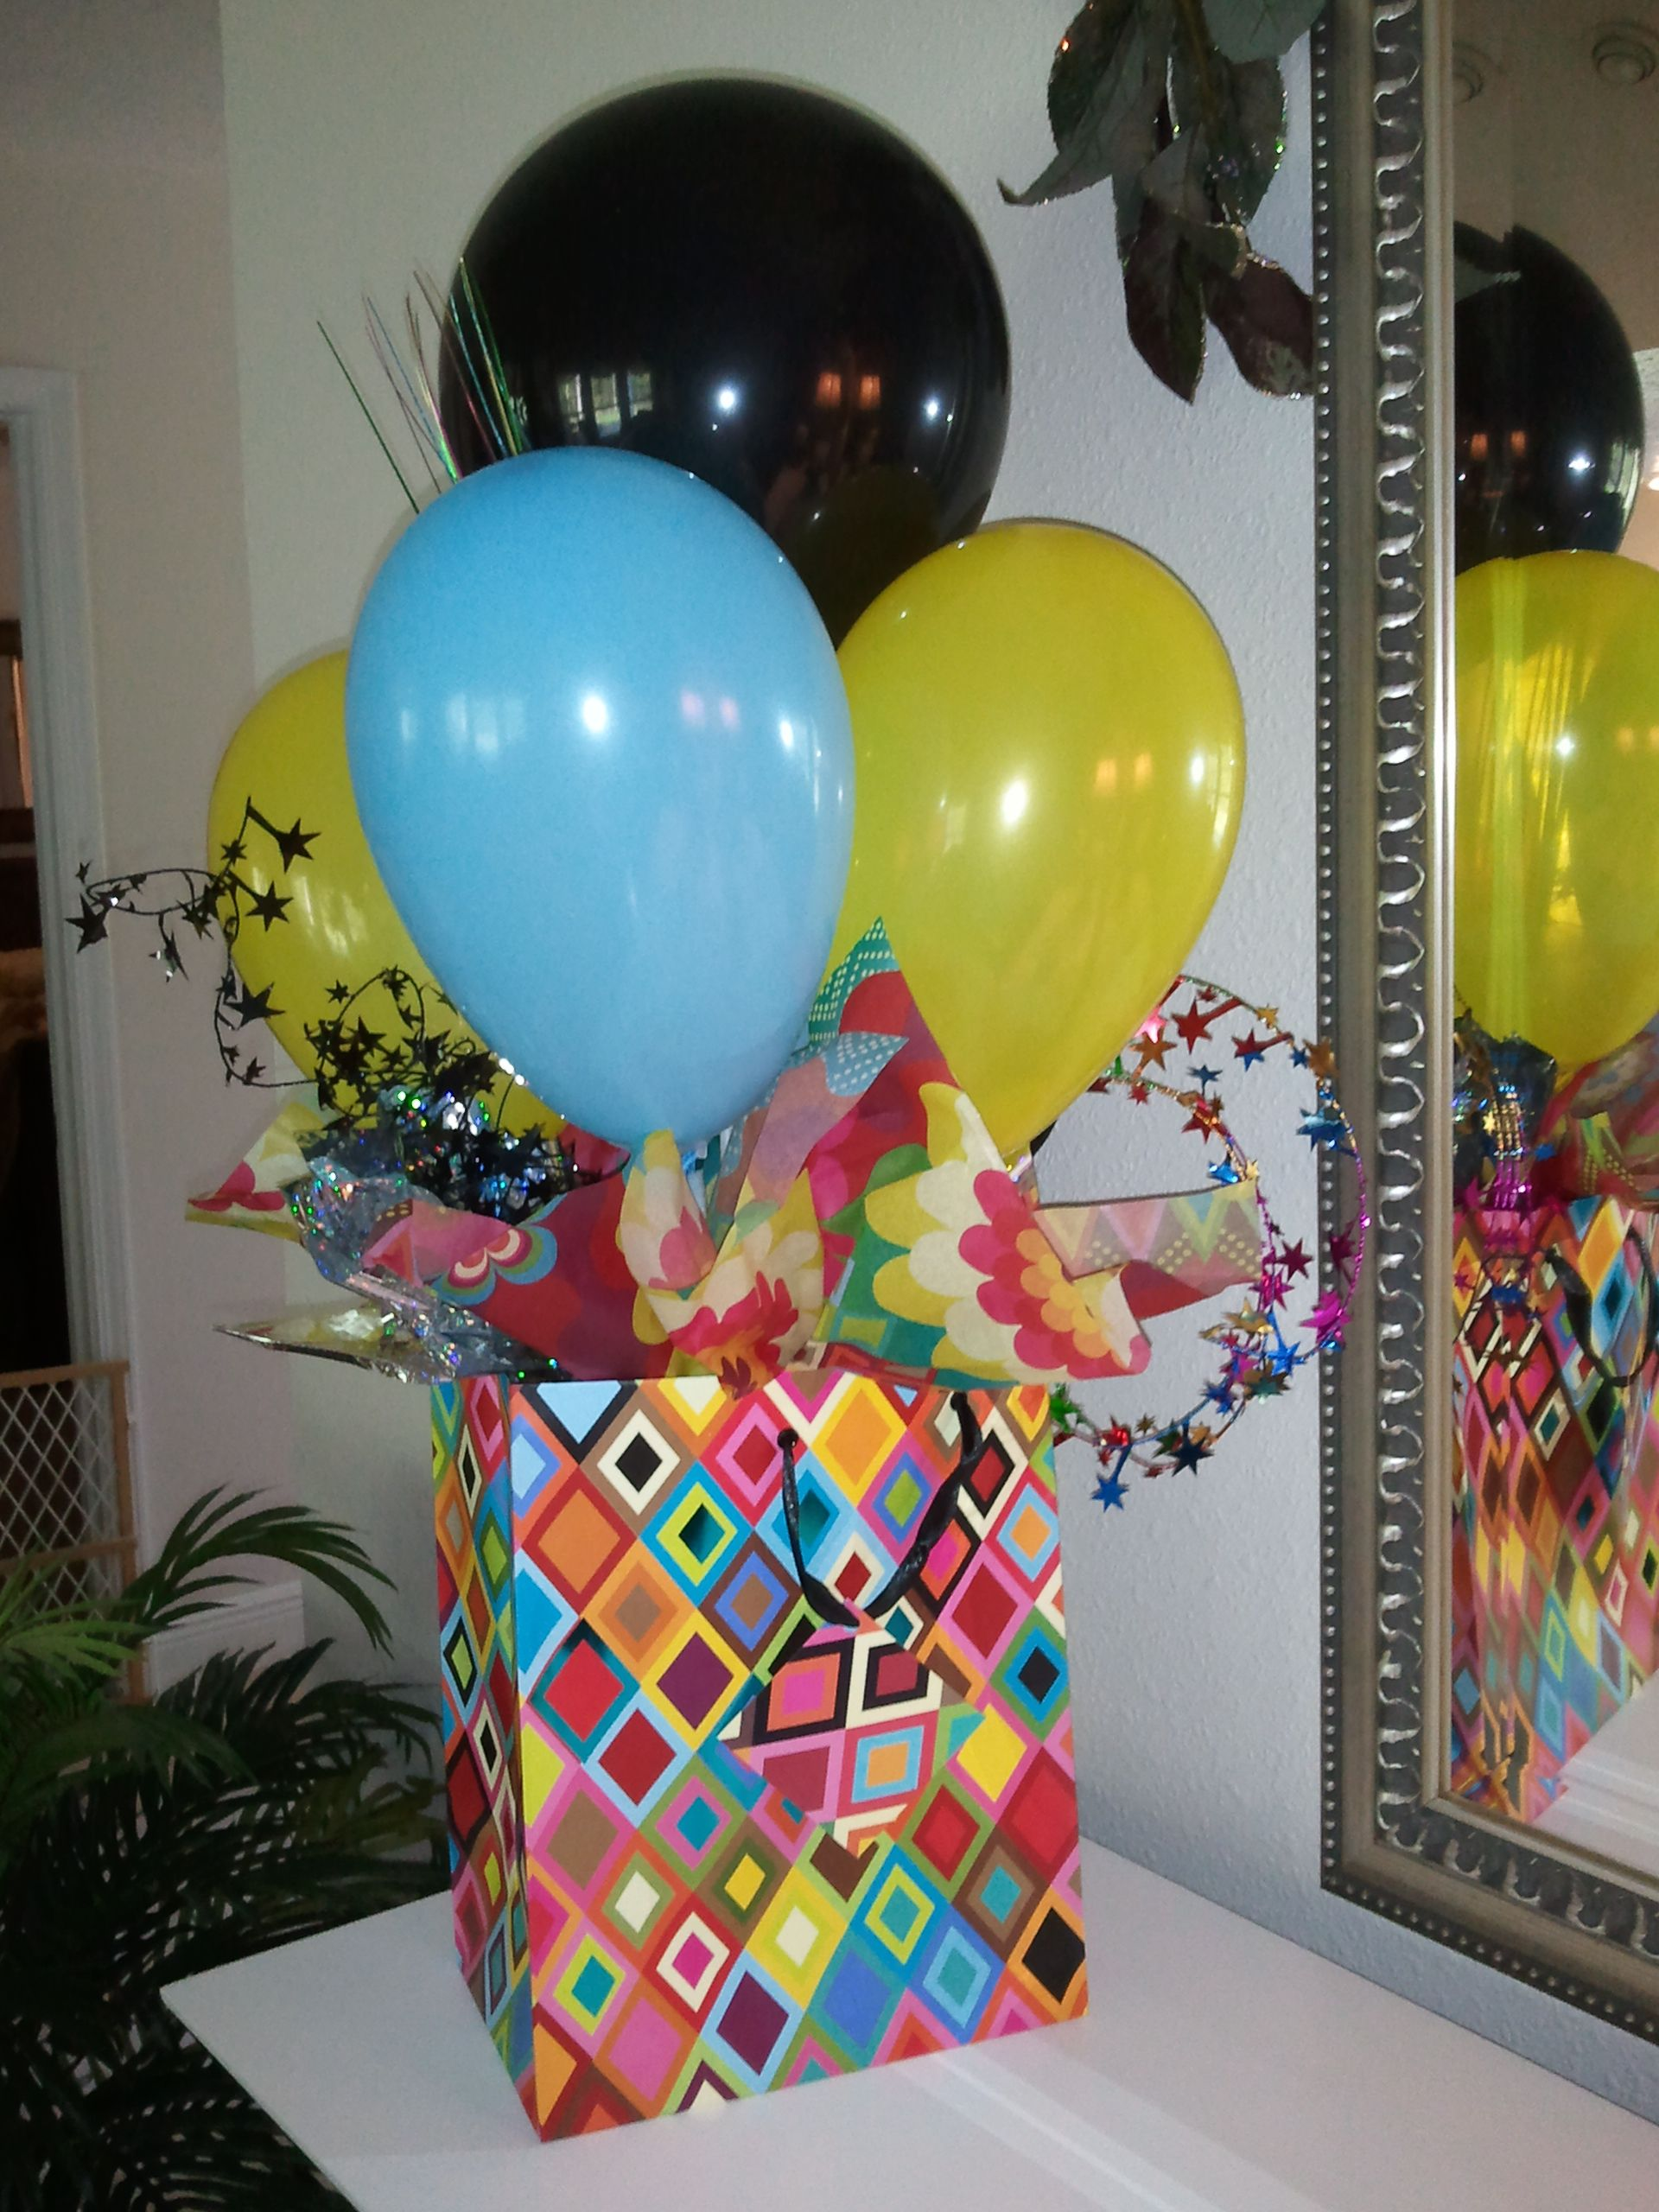 I Chose Gift Bags To Make These Balloon Centerpieces In There Are So Many Different Ways Them